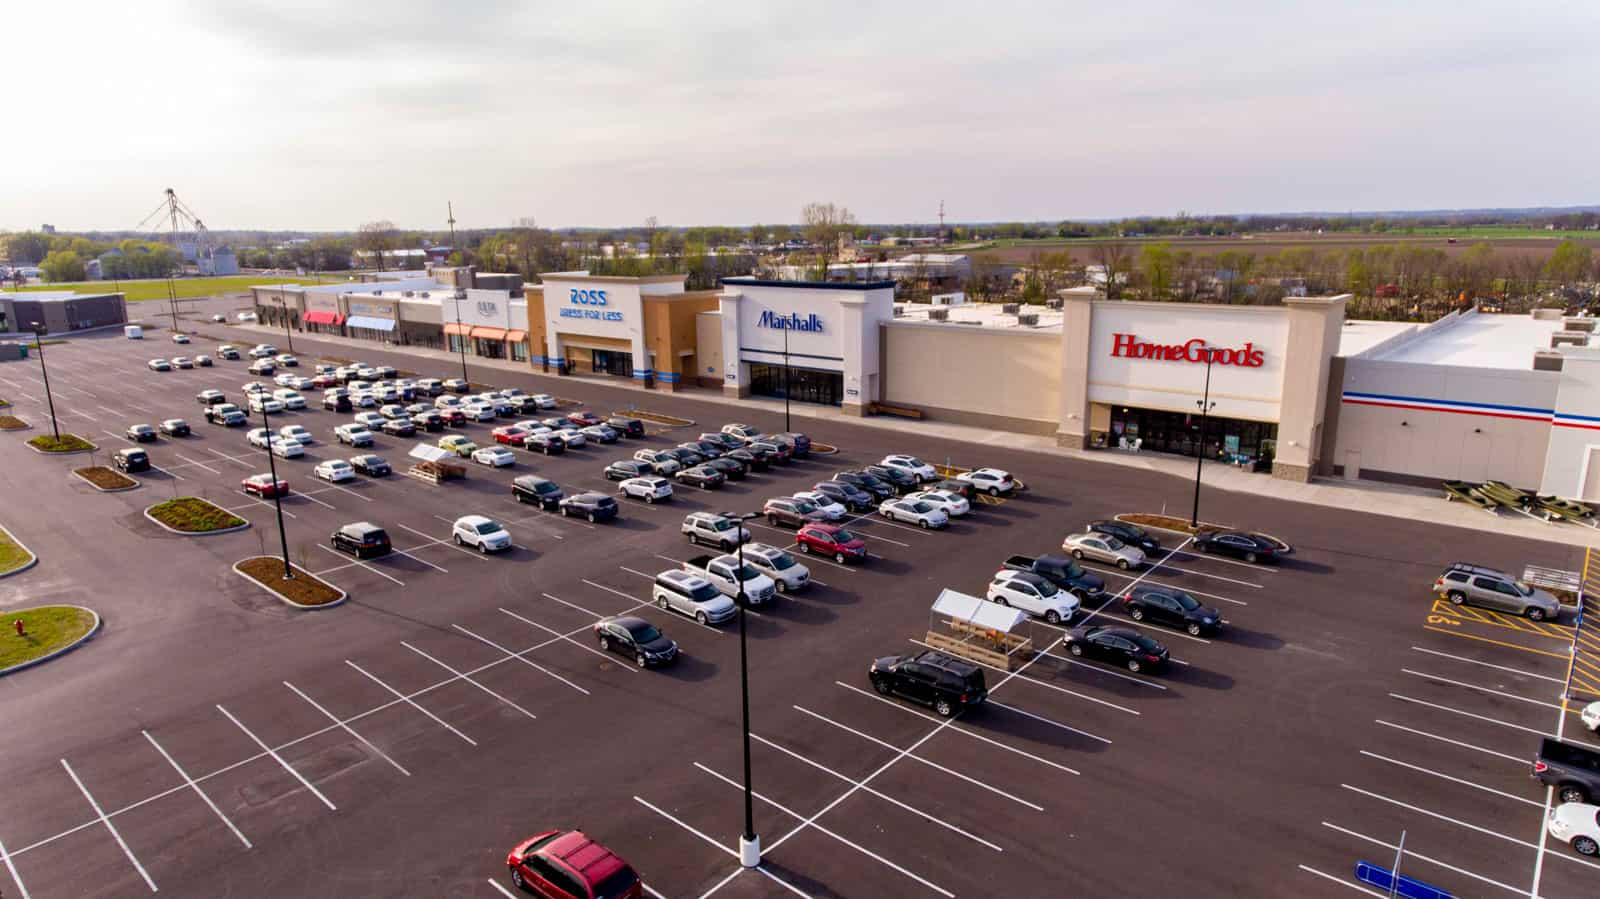 drone photo of strip mall in Missouri